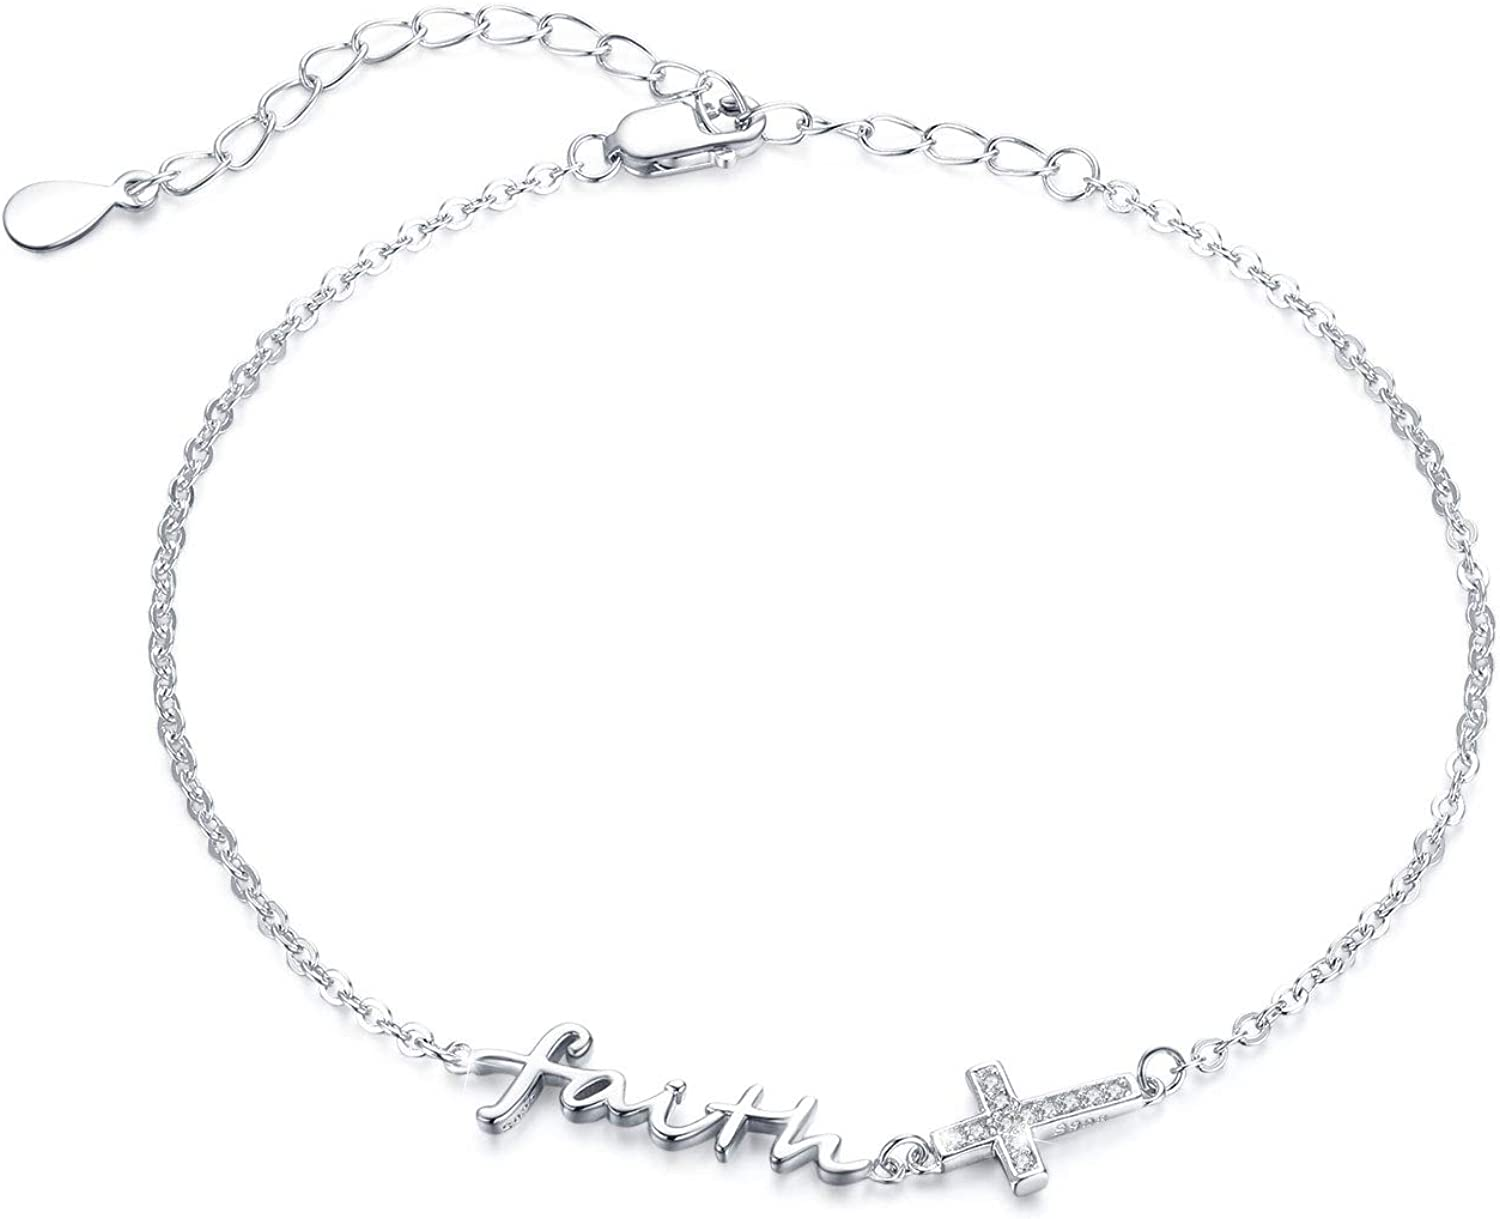 Faith Cross Bracelet 925 Animer and price revision Adjustable Sacramento Mall Anklet Silver Sterling